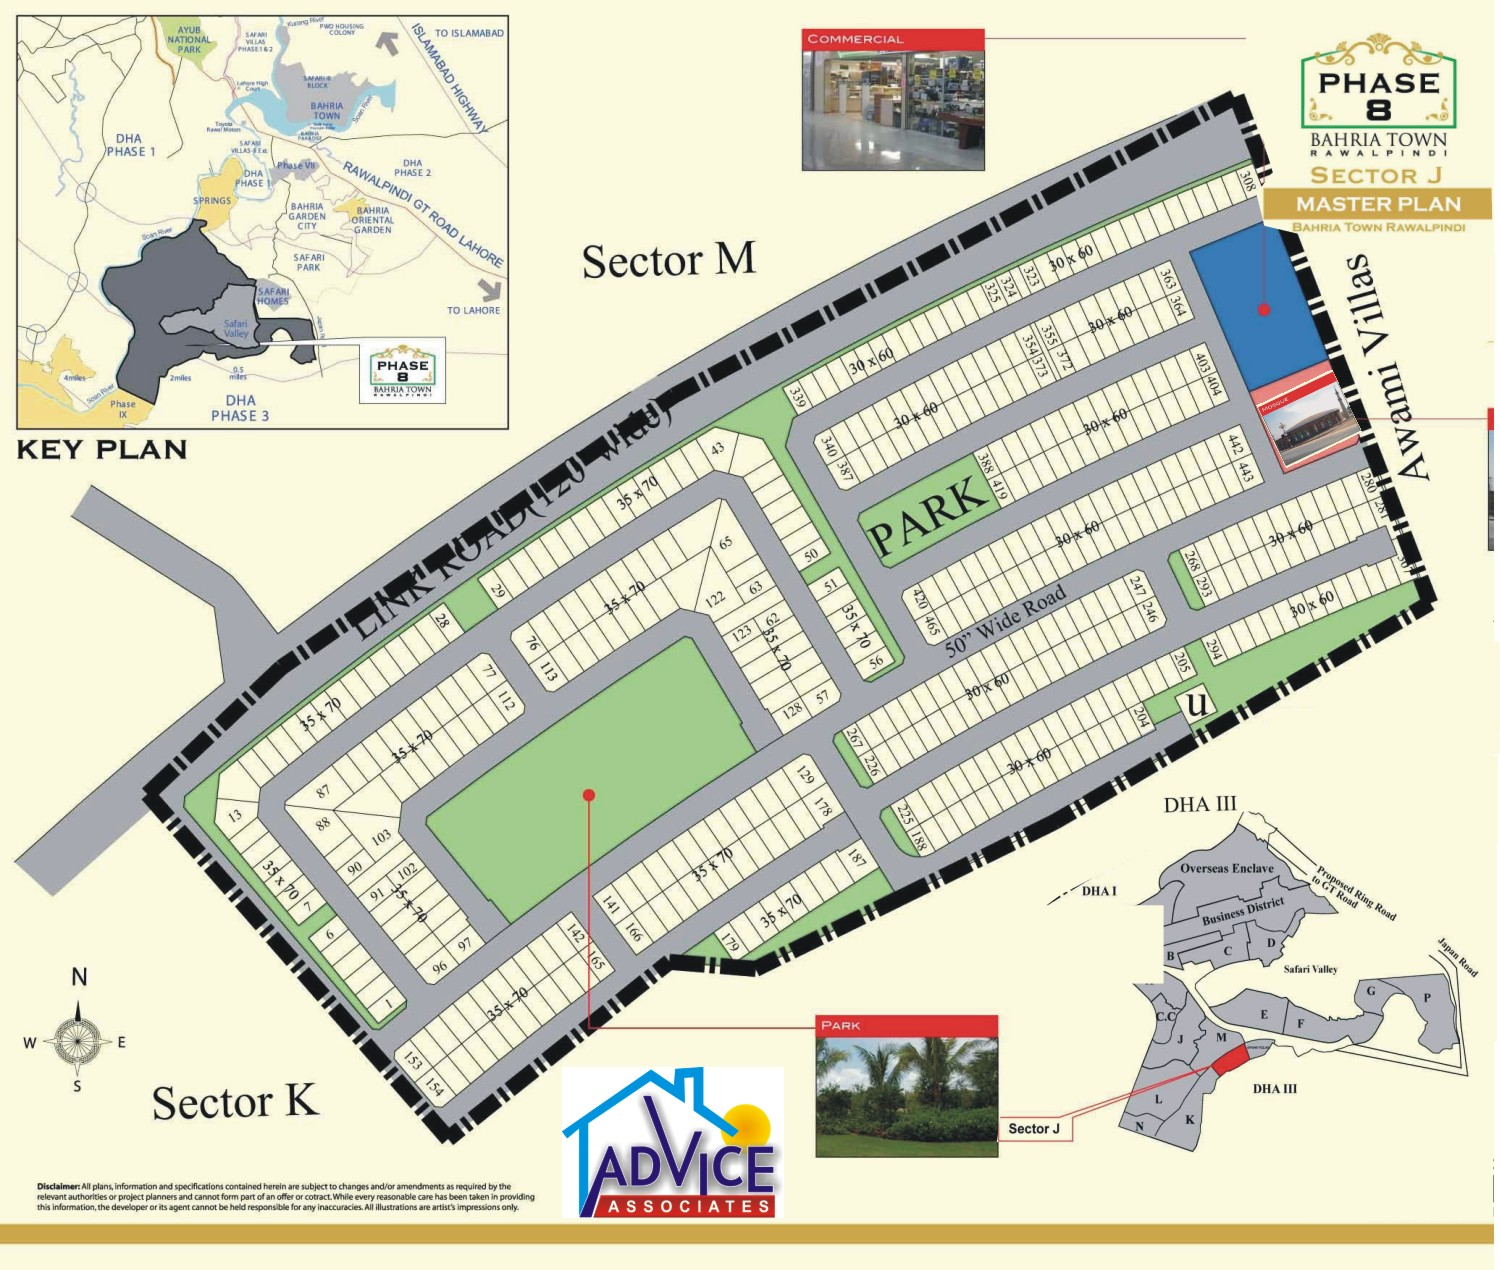 Bahria Town Islamabad Phase 8: 10 Marla Plot In Sector J Phase 8 Bahria Town Islamabad